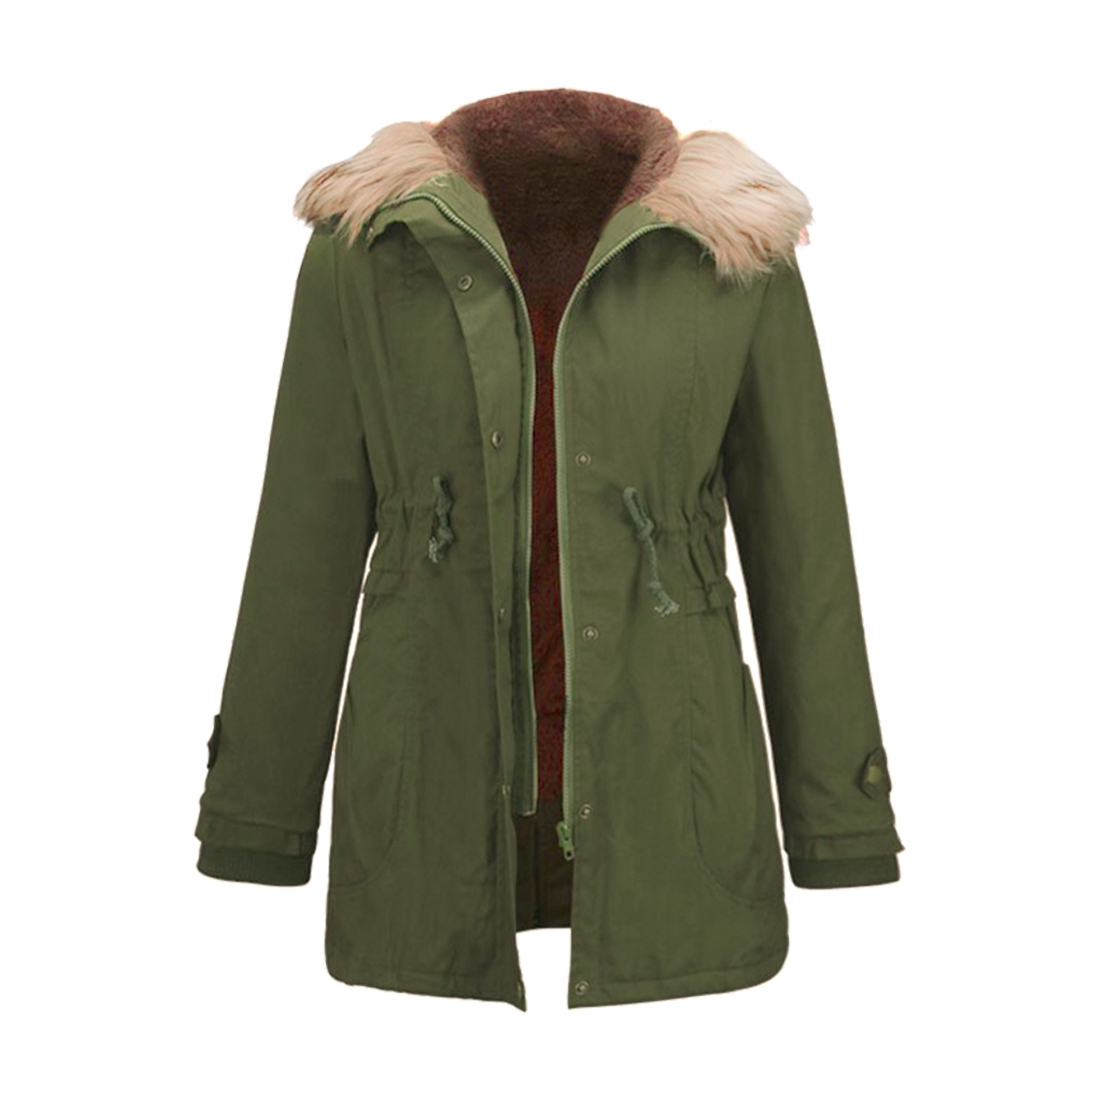 Womens Winter Jacket Liner Casual Coat Overcoat Military Hooded Thickening Warm Cotton Coat Medium-Long Jacket Fur CoatsОдежда и ак�е��уары<br><br><br>Aliexpress